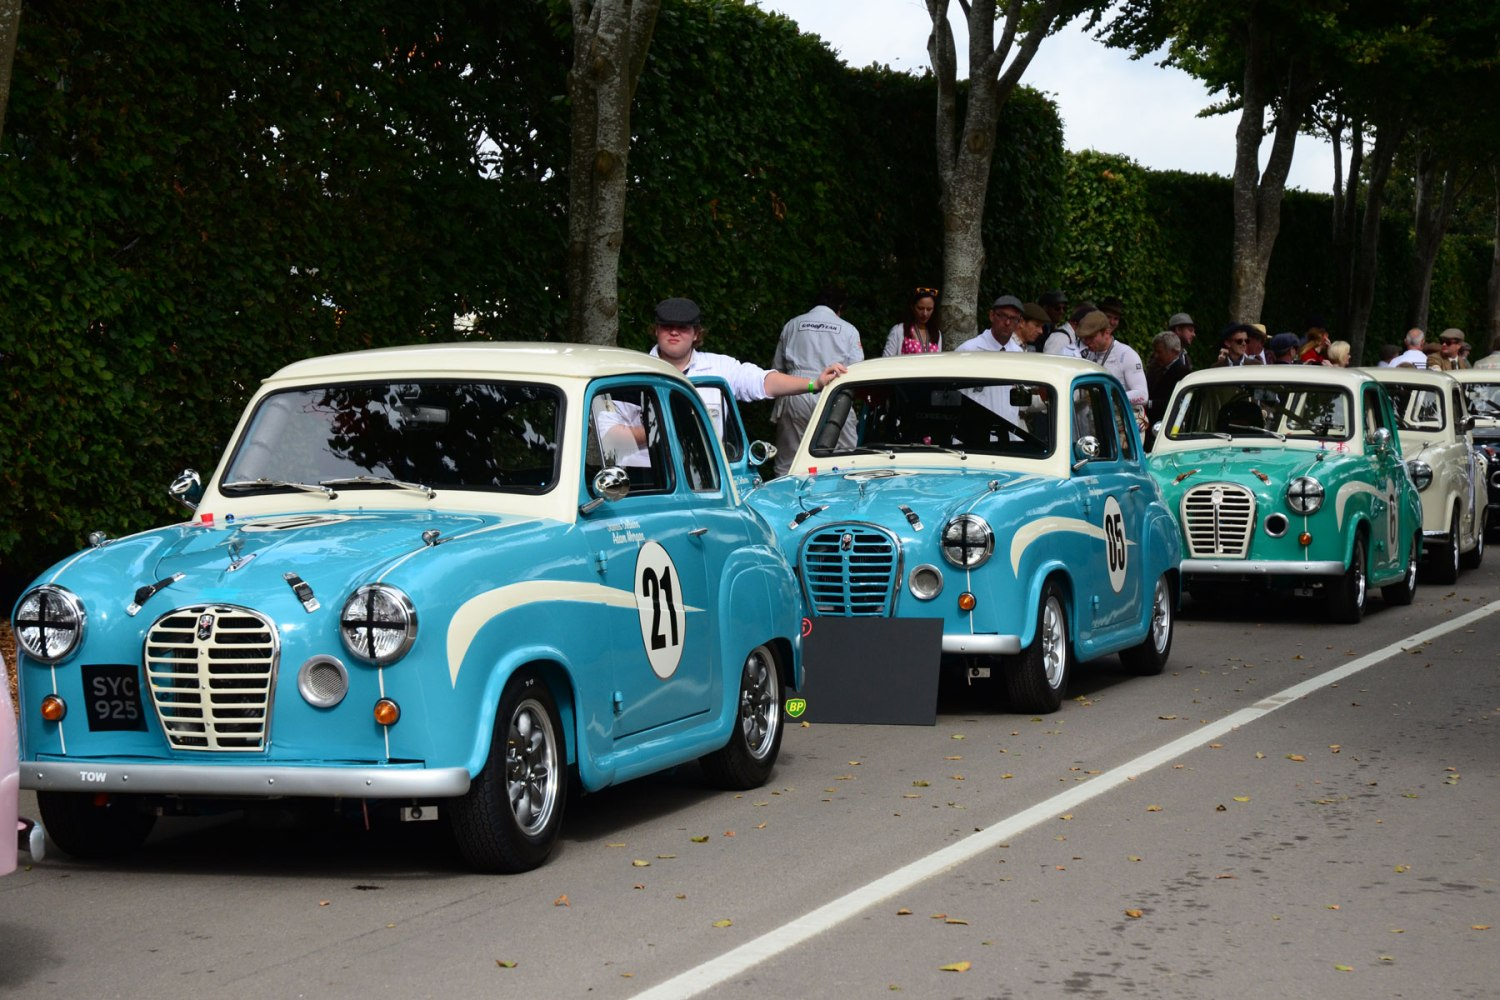 Goodwood Revival 2016: day 1